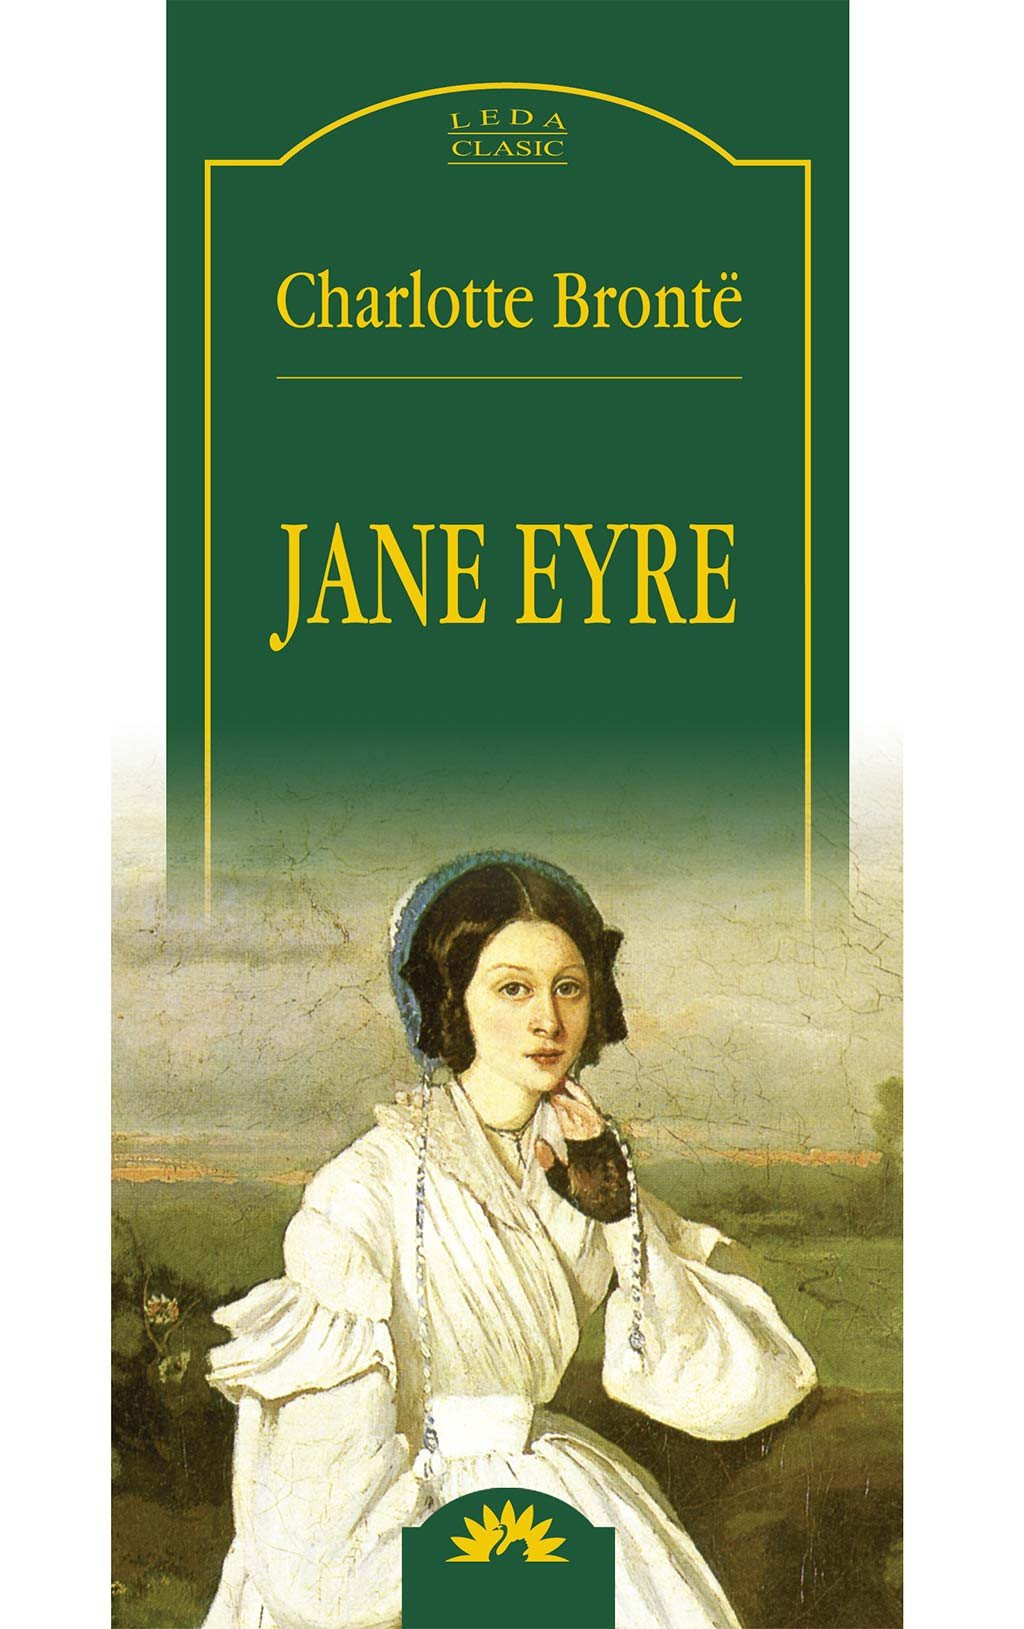 an analysis of the character of jane eyre in charlotte brontes novel jane eyre